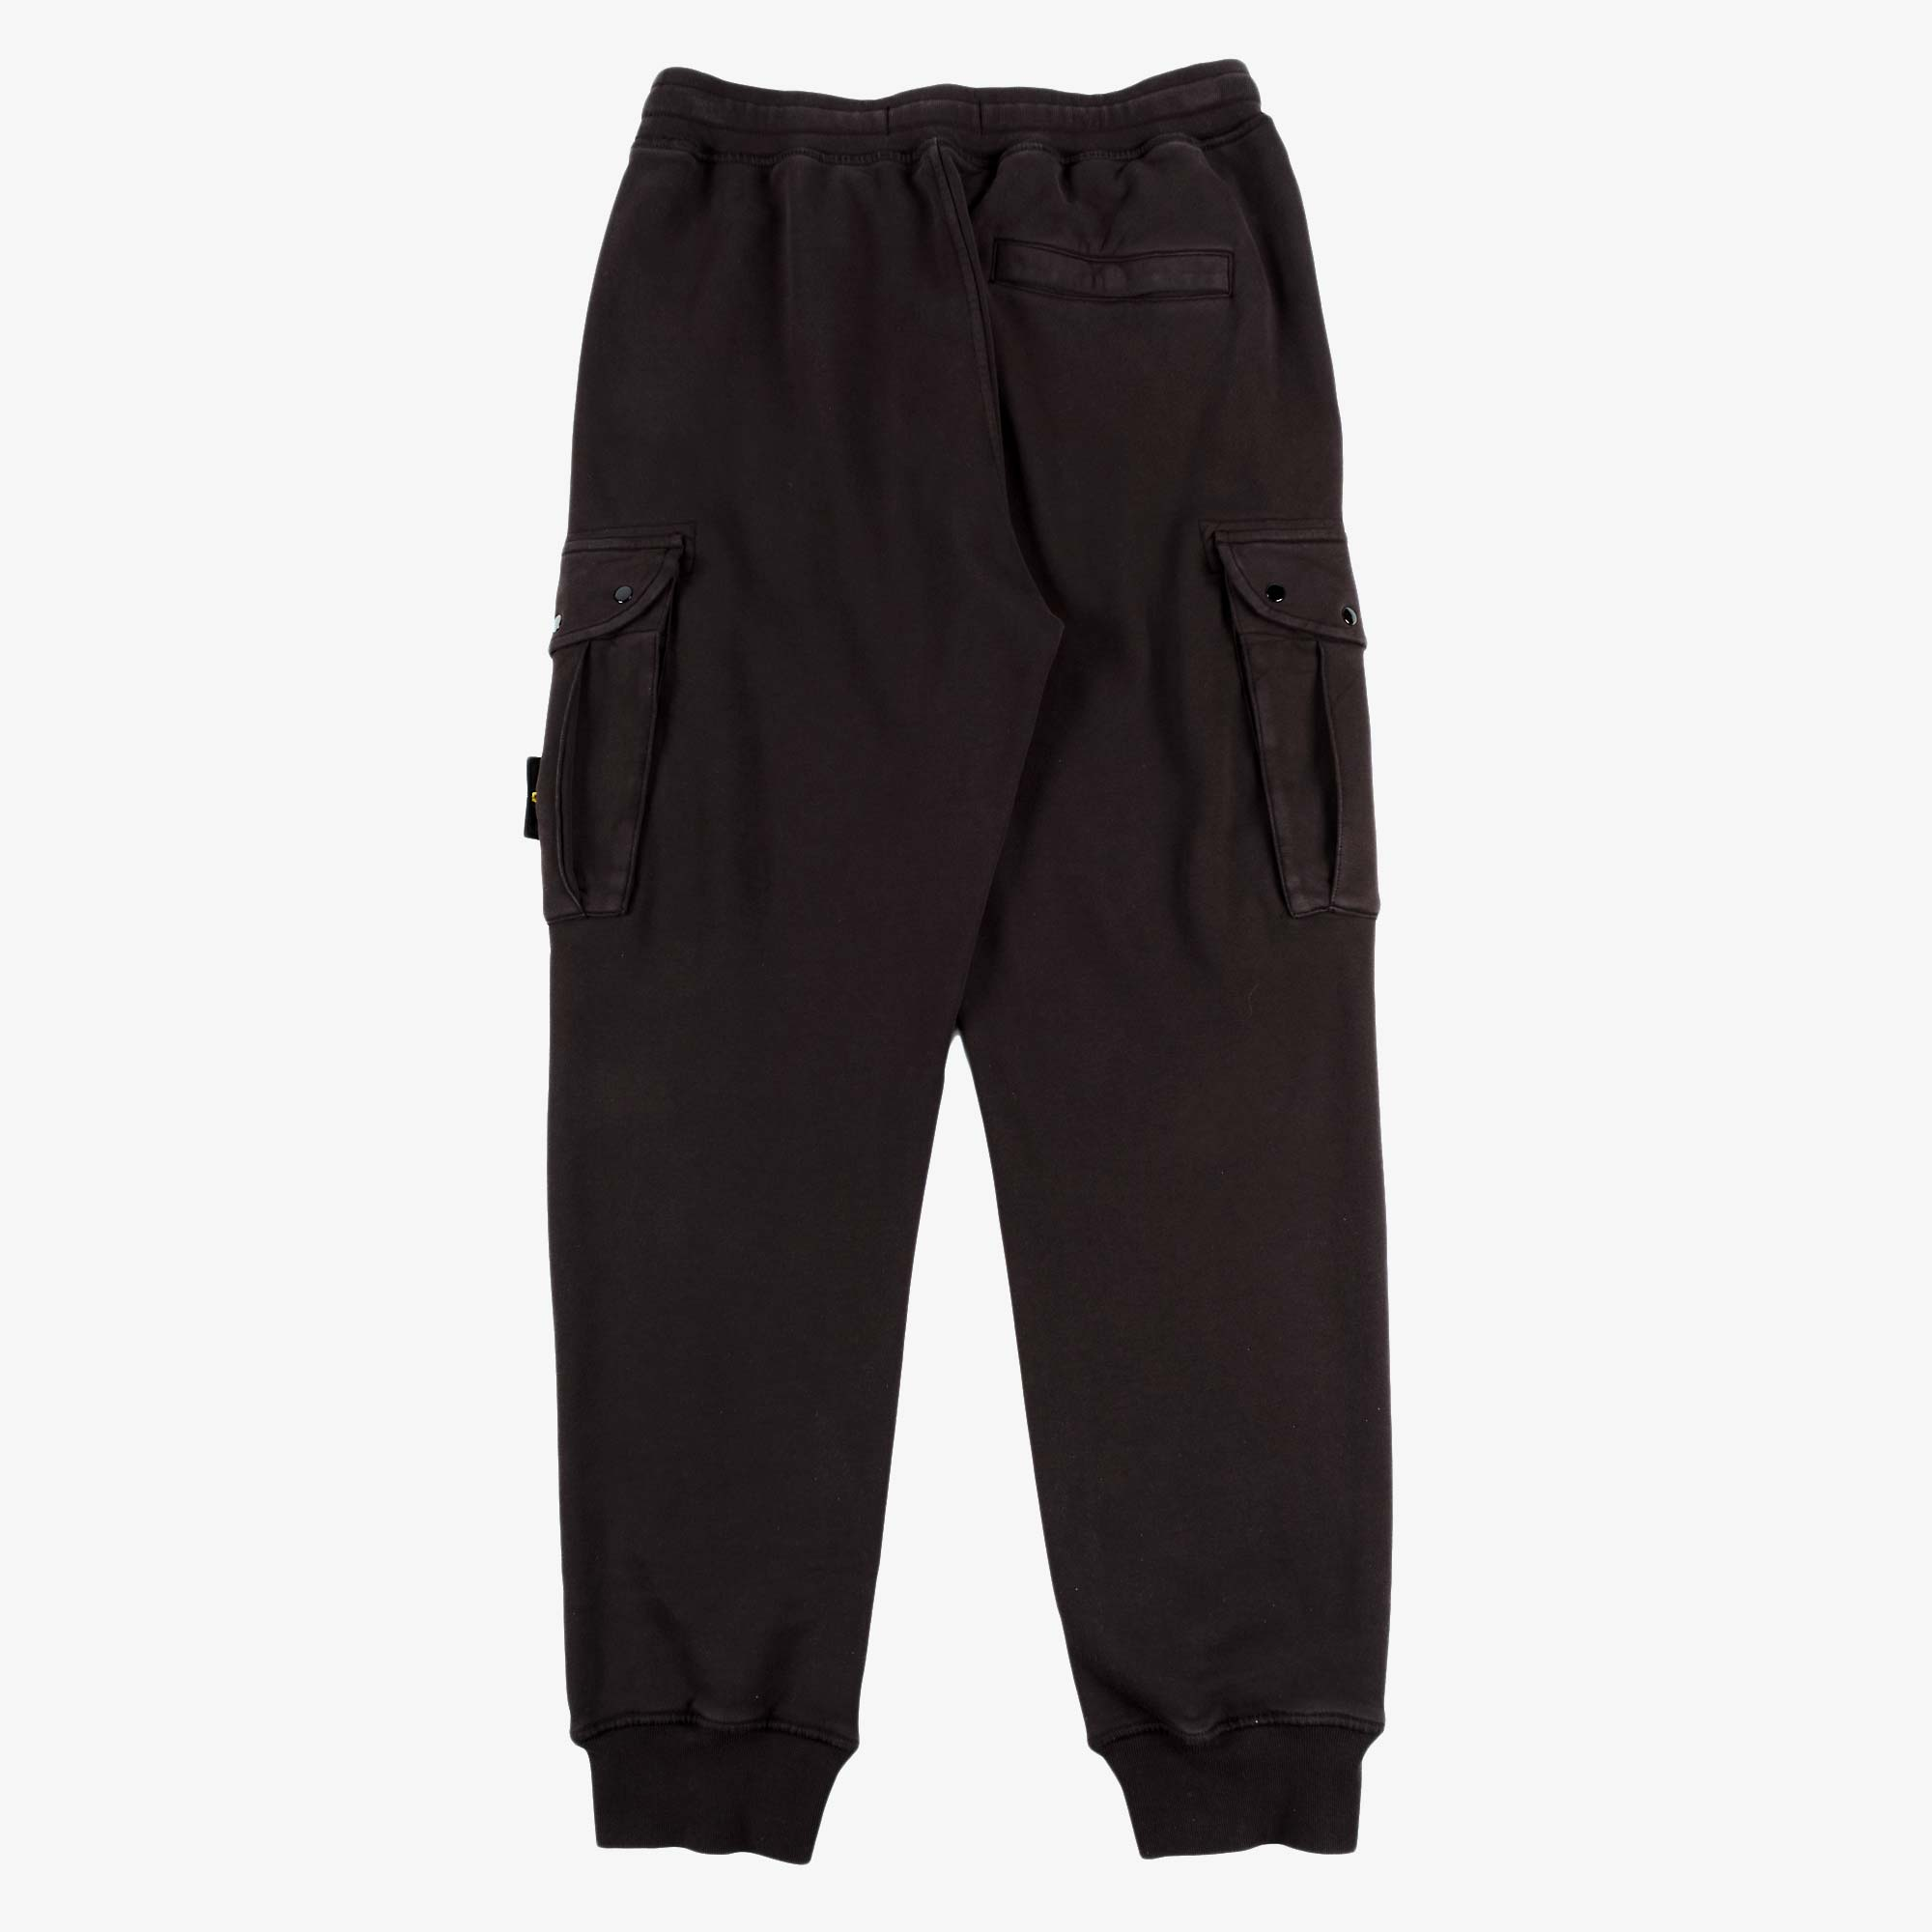 Stone Island Fleece Pants 741565251 - Black 5